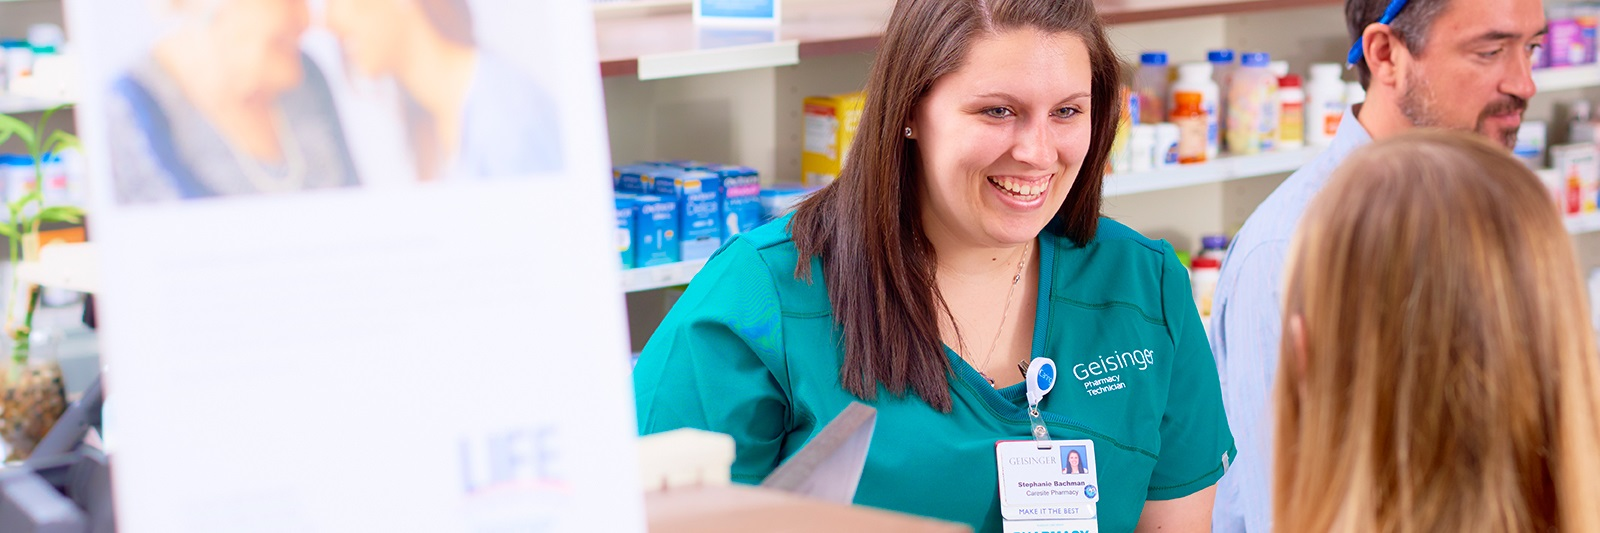 Pharmacy technician serving a patient in the pharmacy